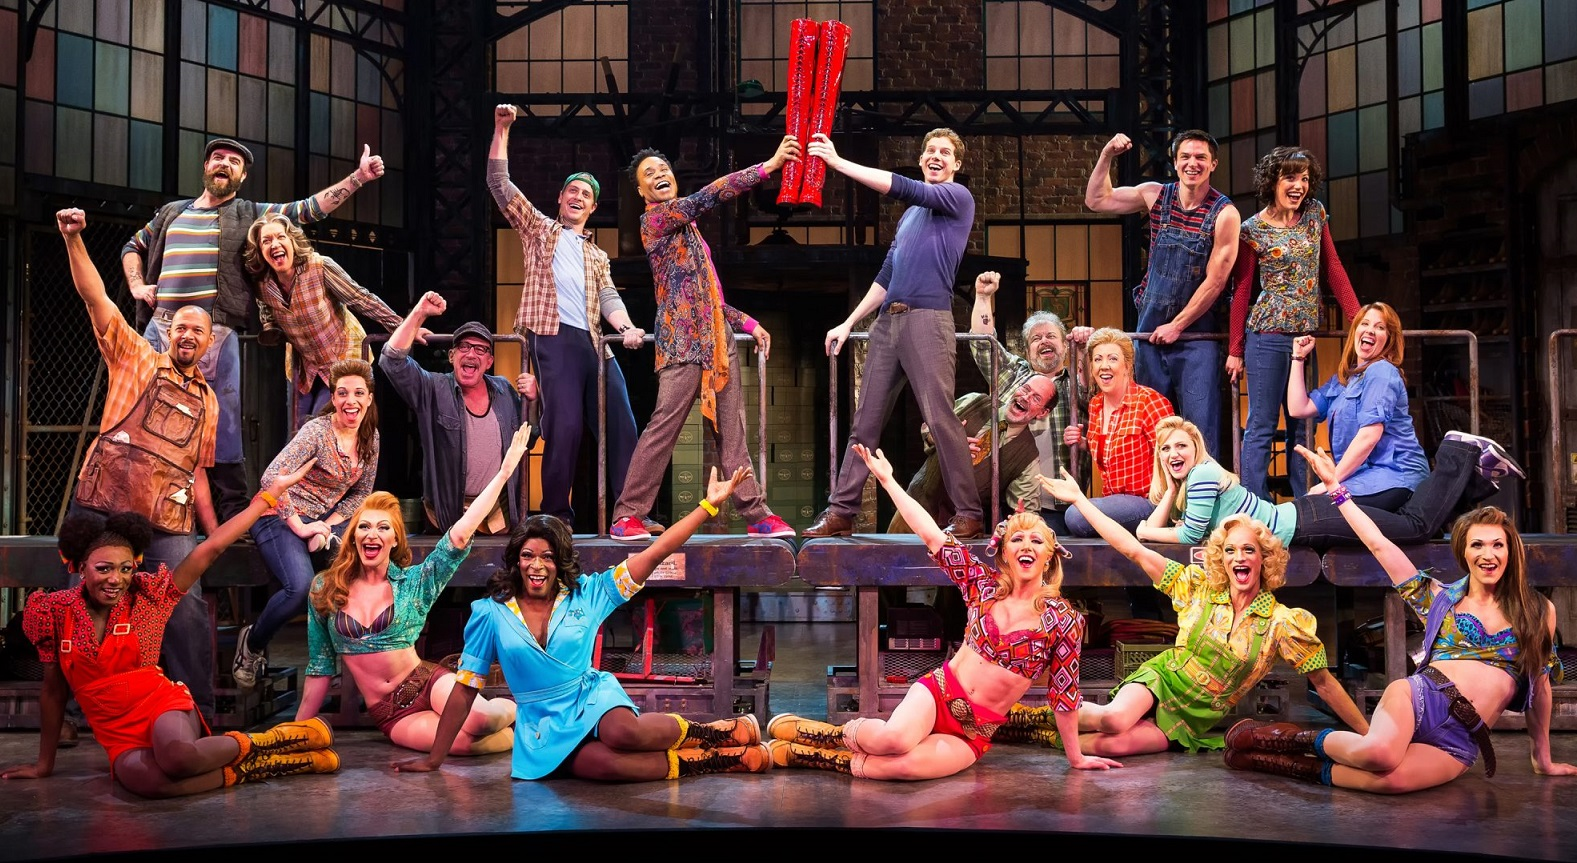 'Kinky Boots' is on stage through Sunday in Shea's Performing Arts Center. Pictured is the original cast from the Broadway production. (Matthew Murphy)